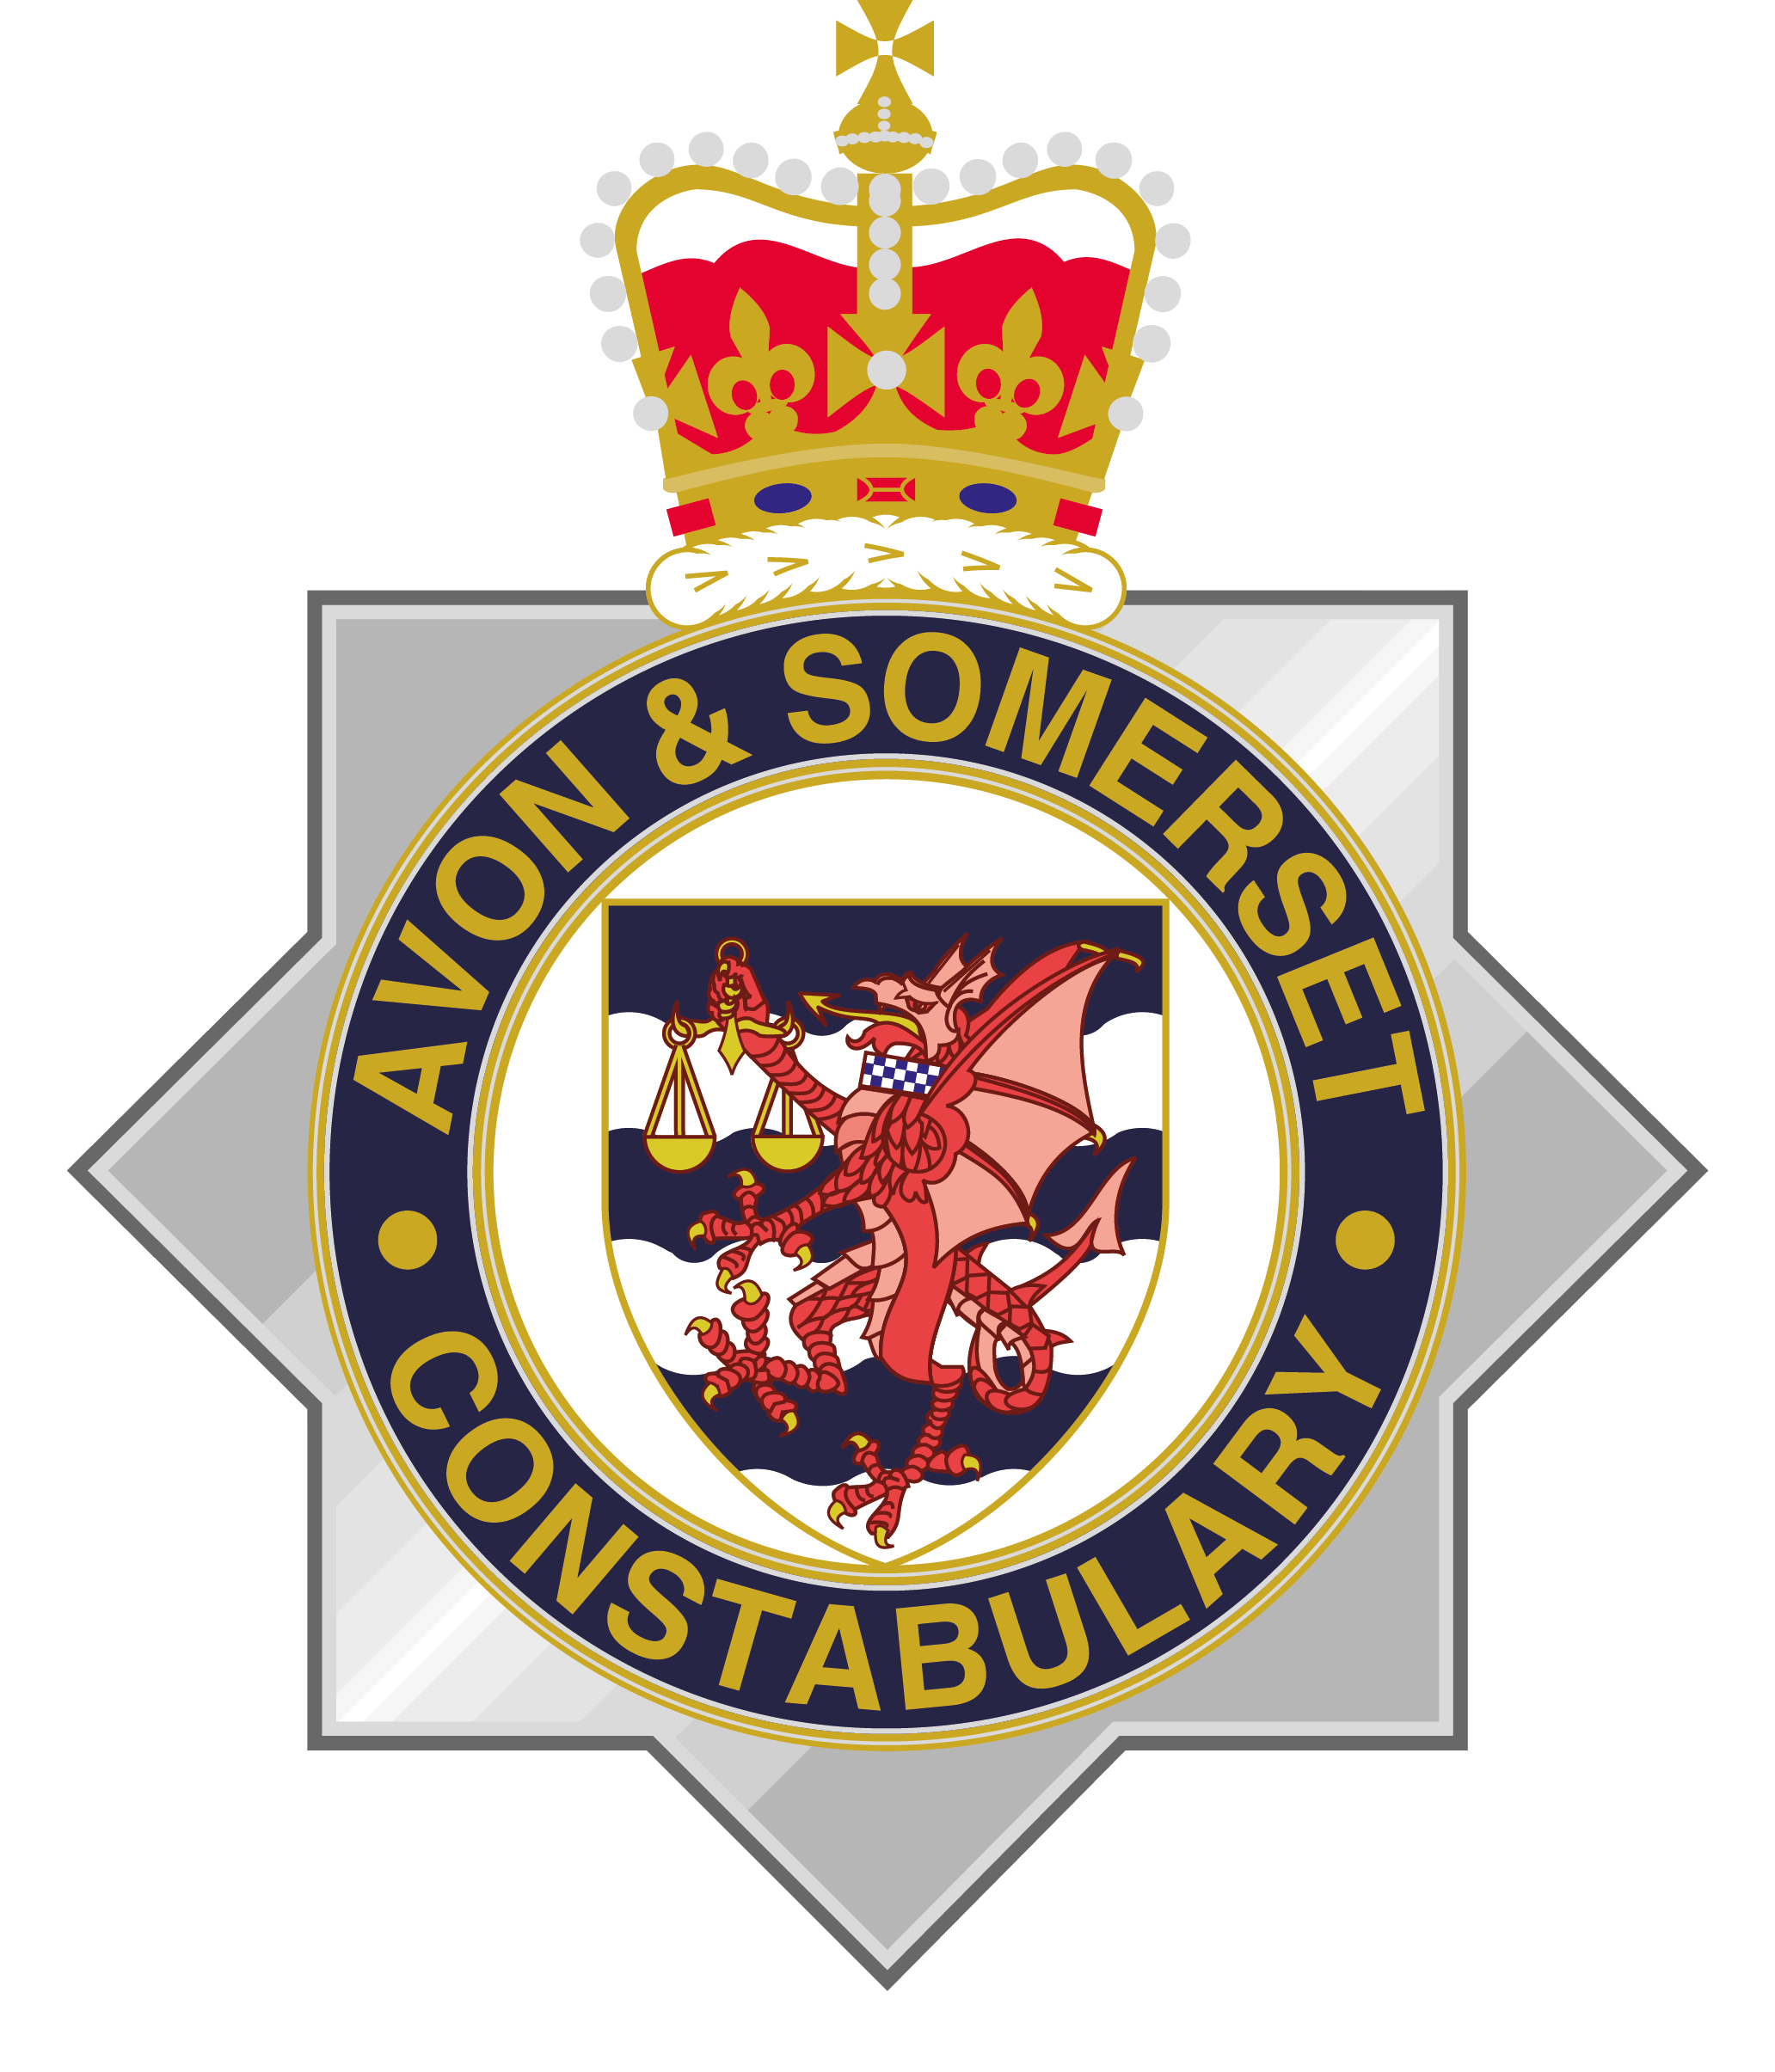 Avon and Somerset Police